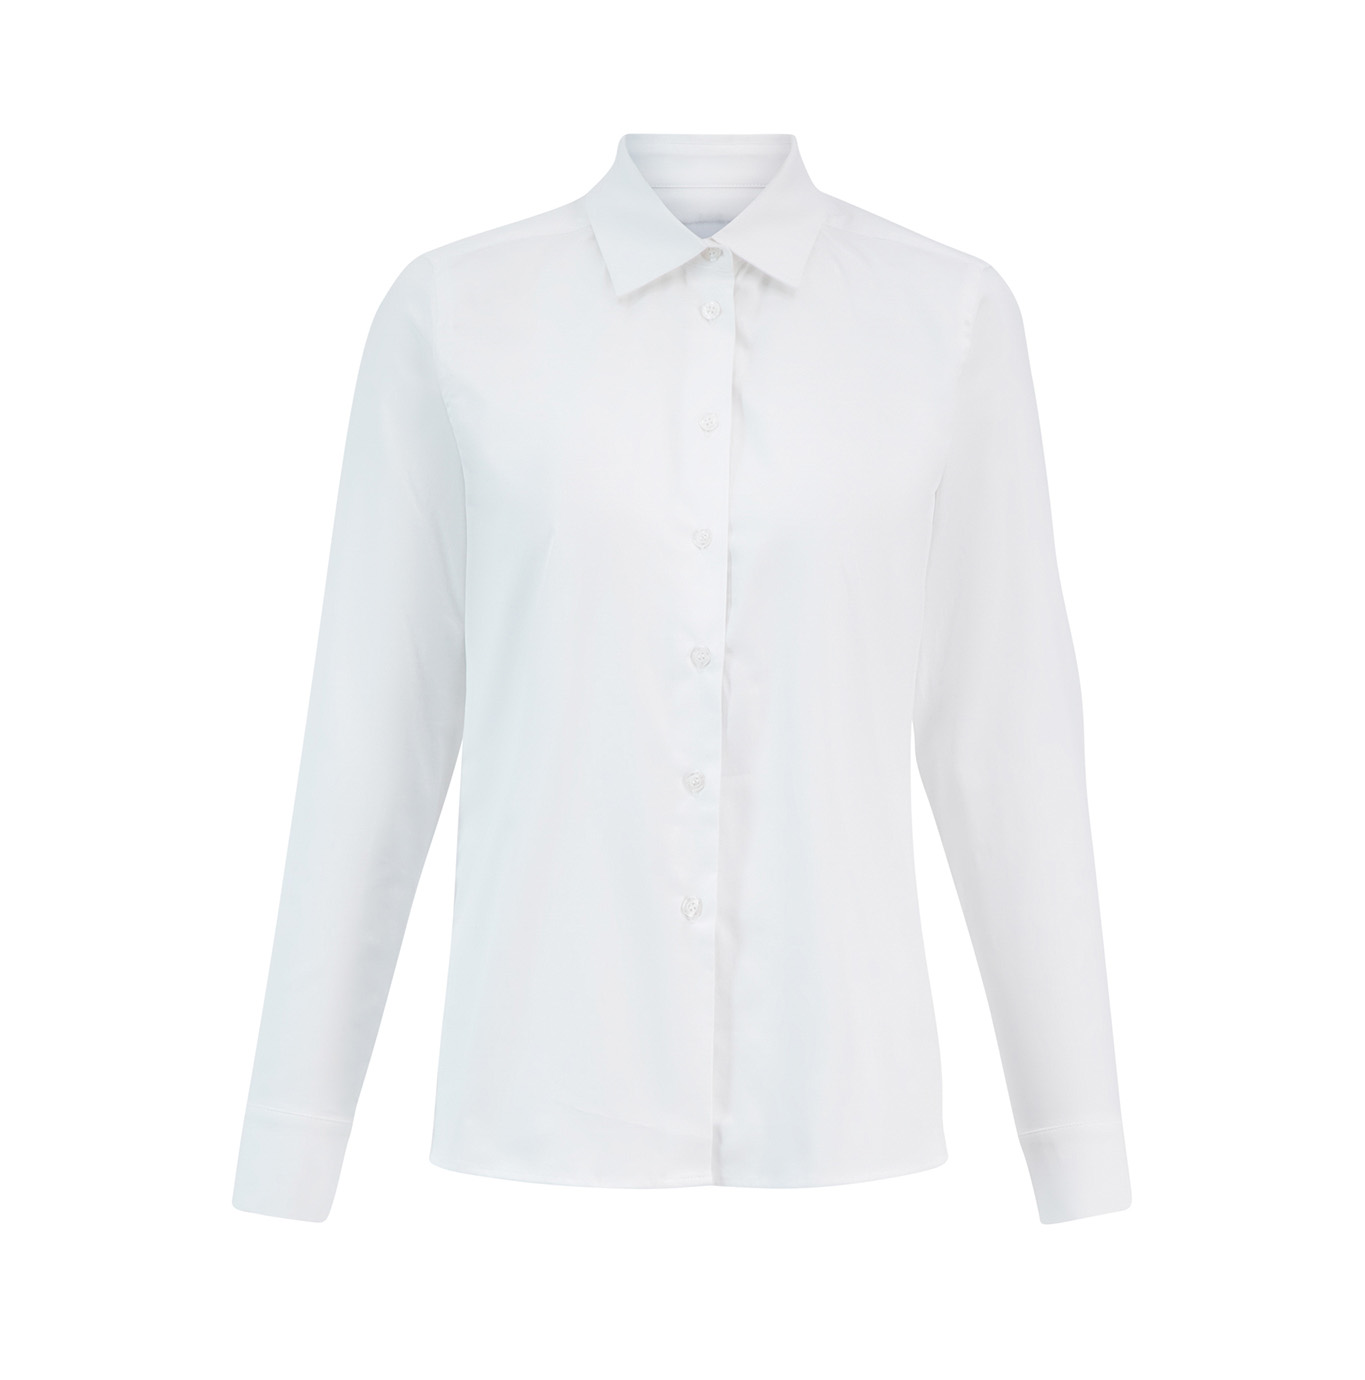 The Misha Nonoo shirt which costs £125 (Misha Nonoo/PA)